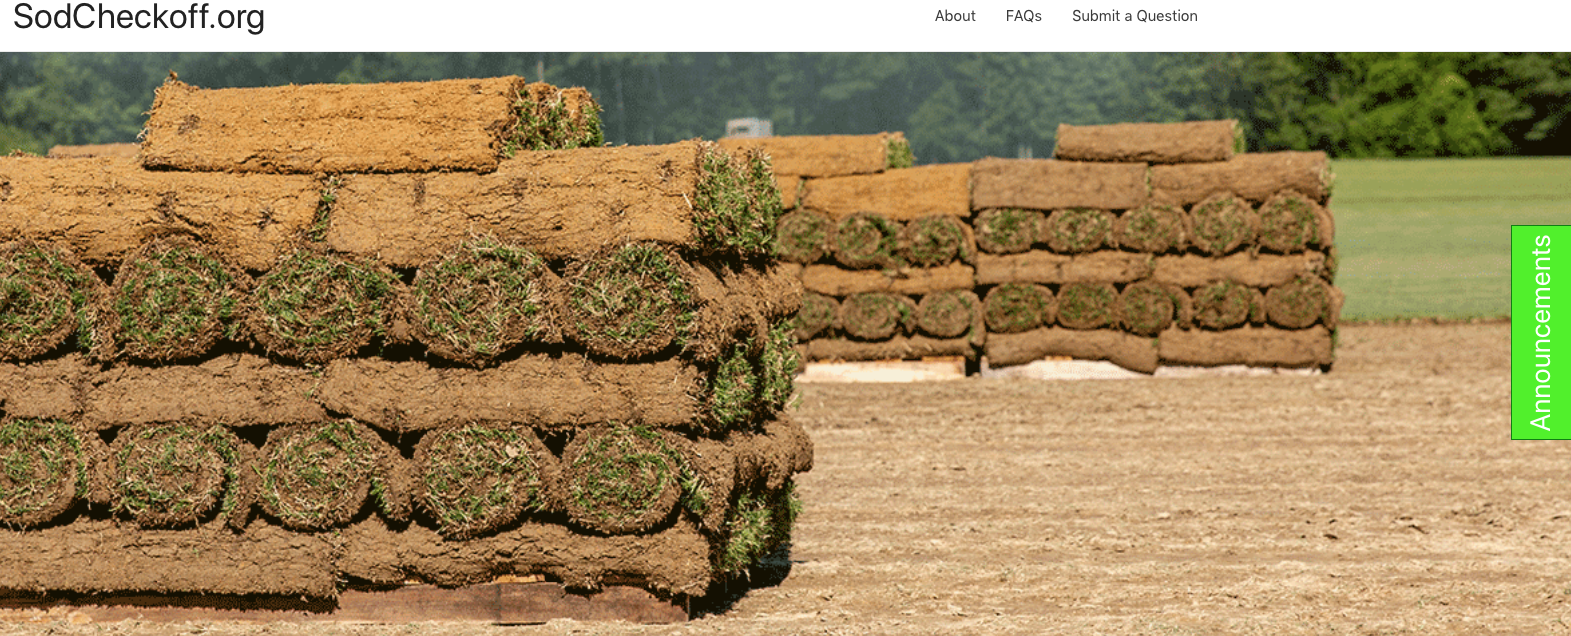 sod industry checkoff